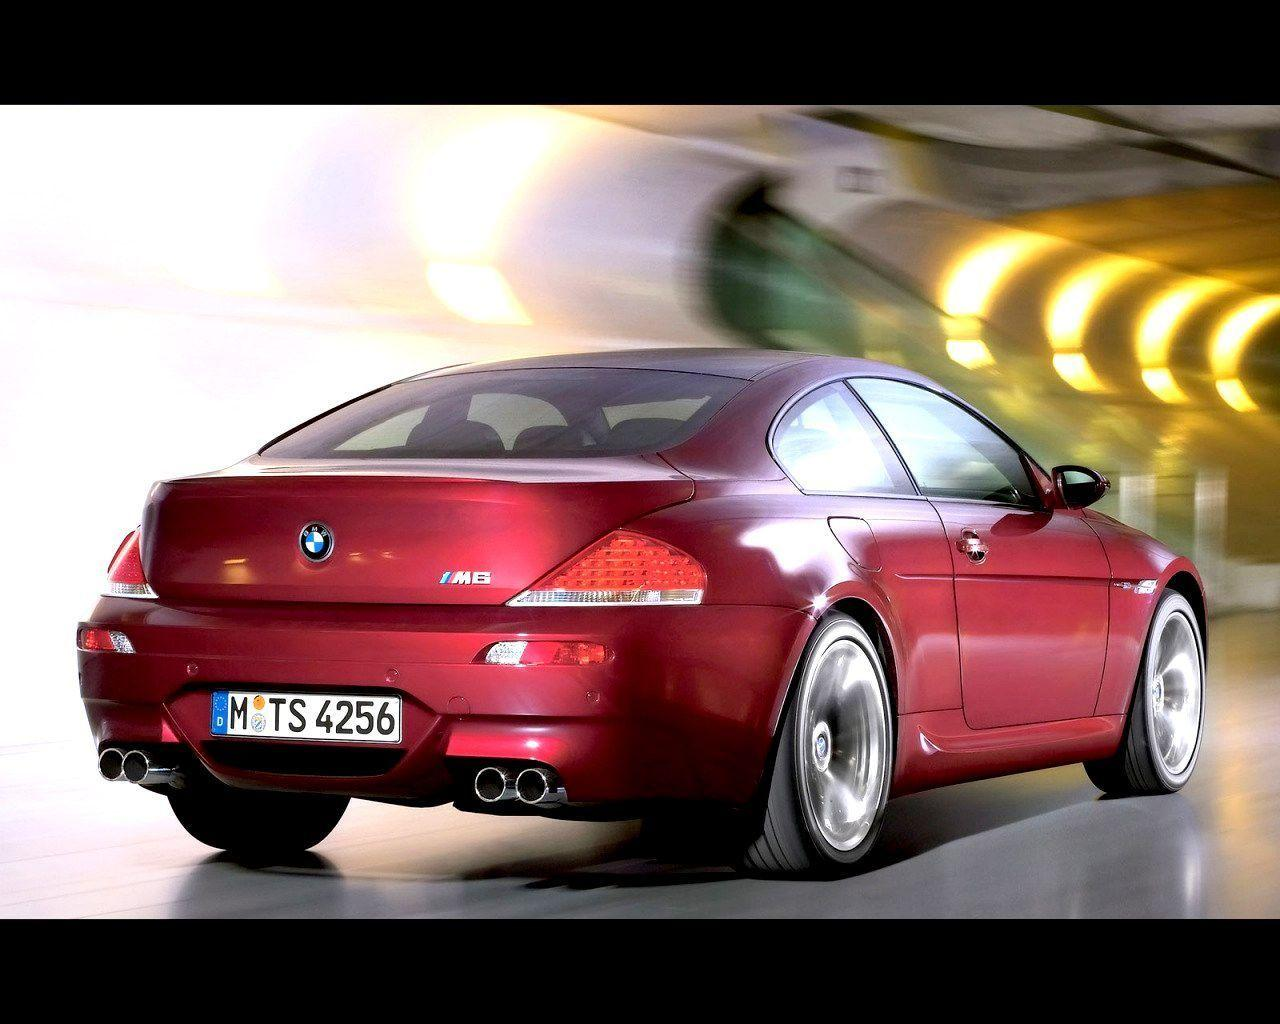 2006 BMW M6 Wallpaper 11 - 1280x1024